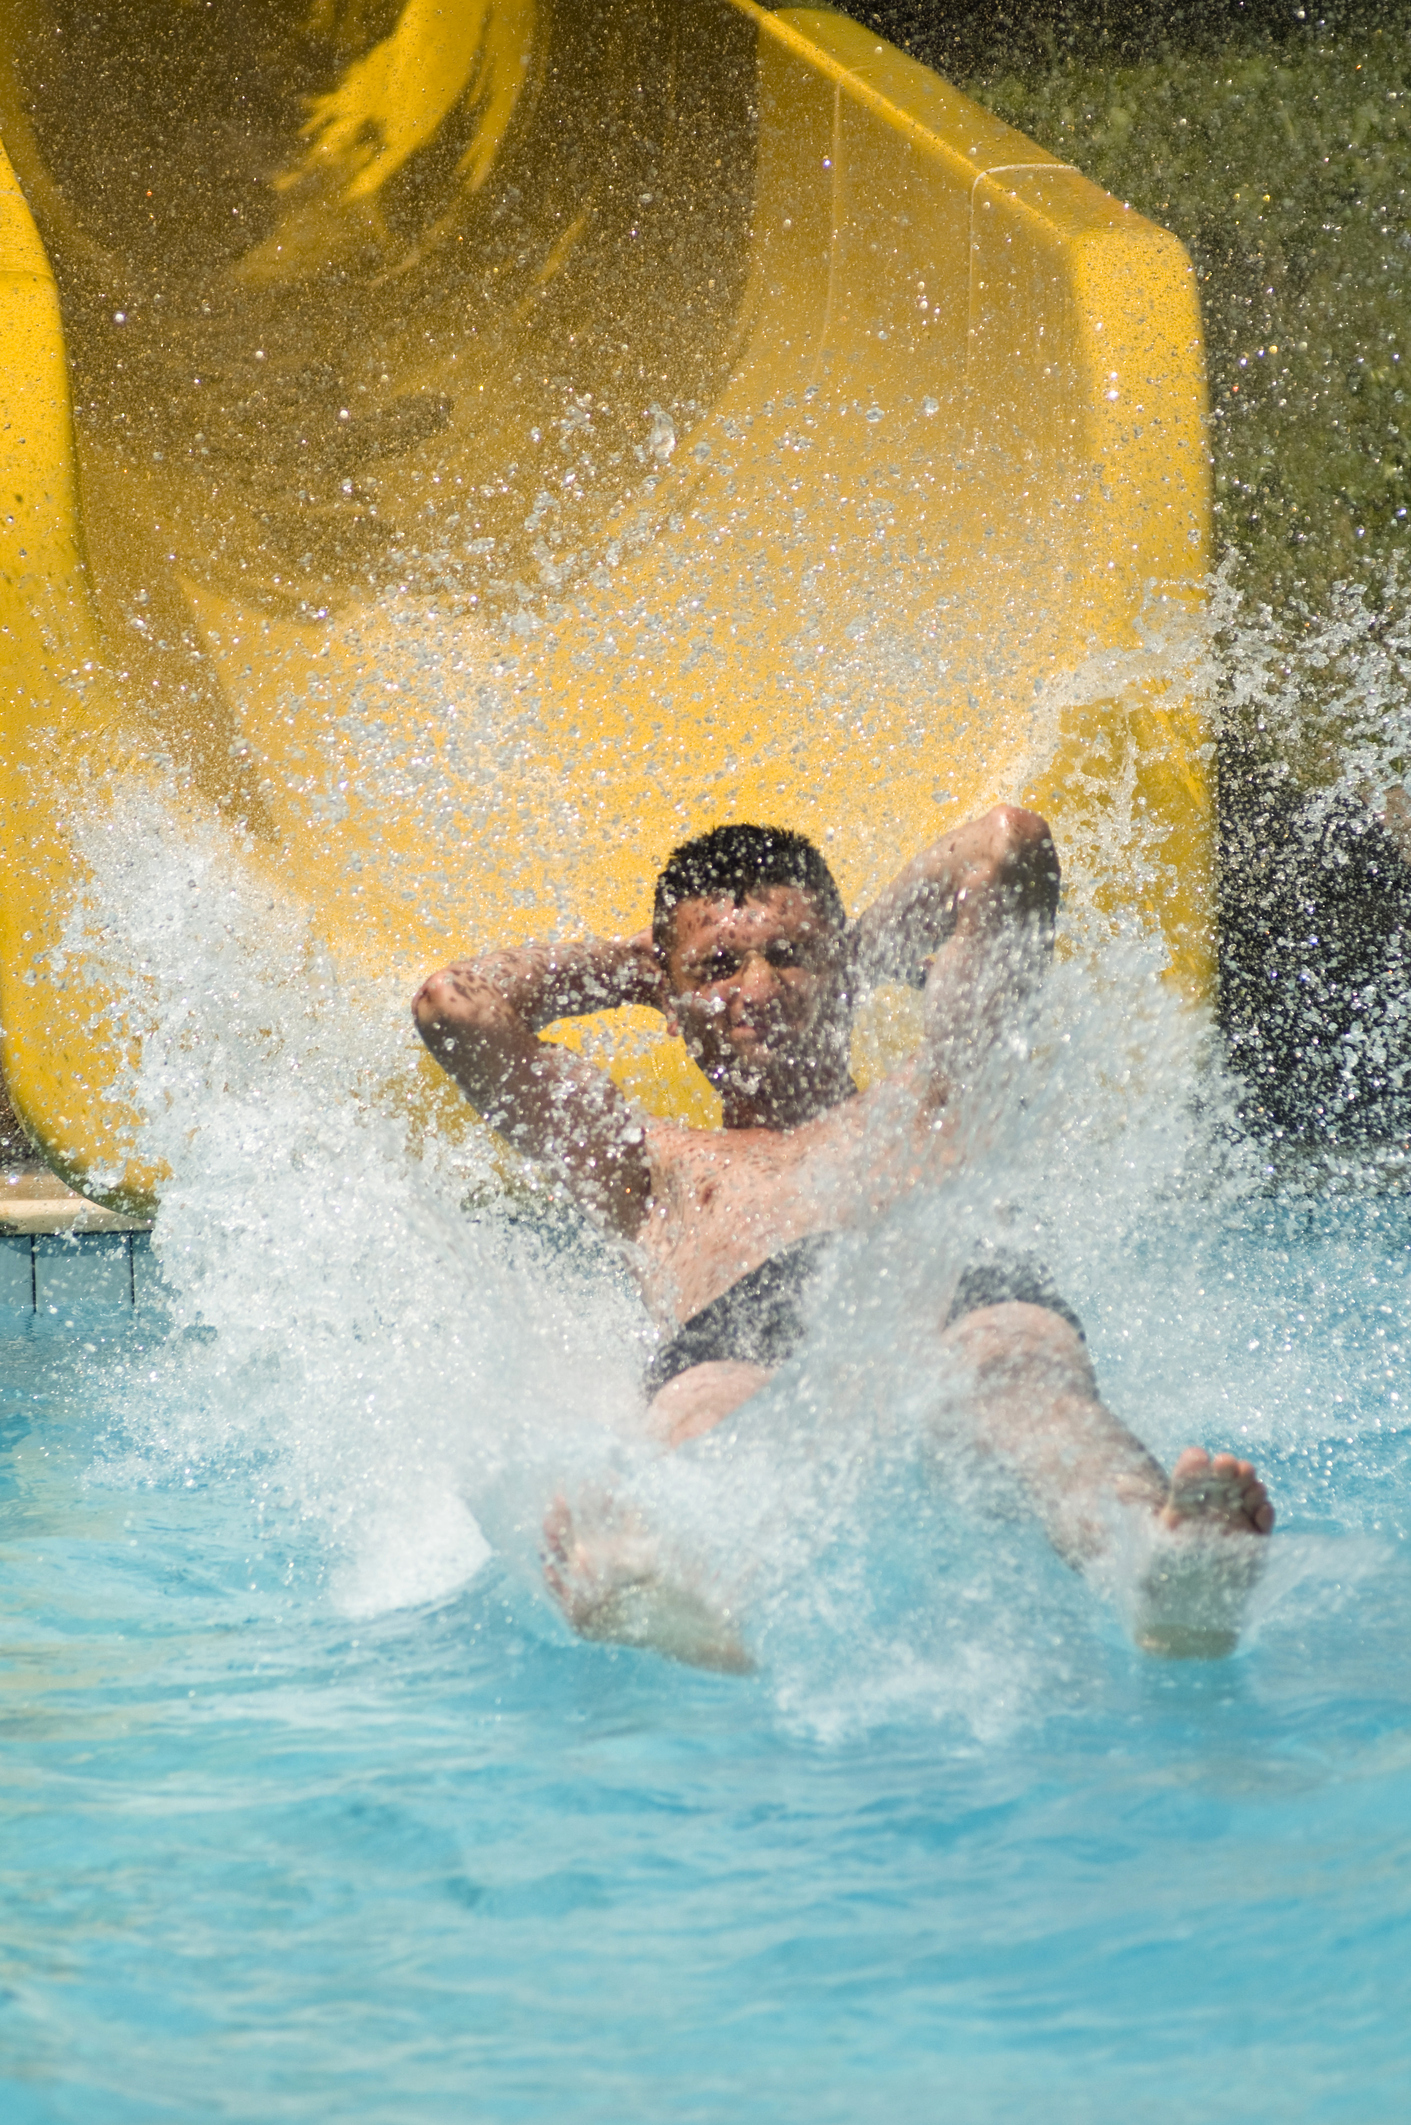 Water park guy coming out of slide